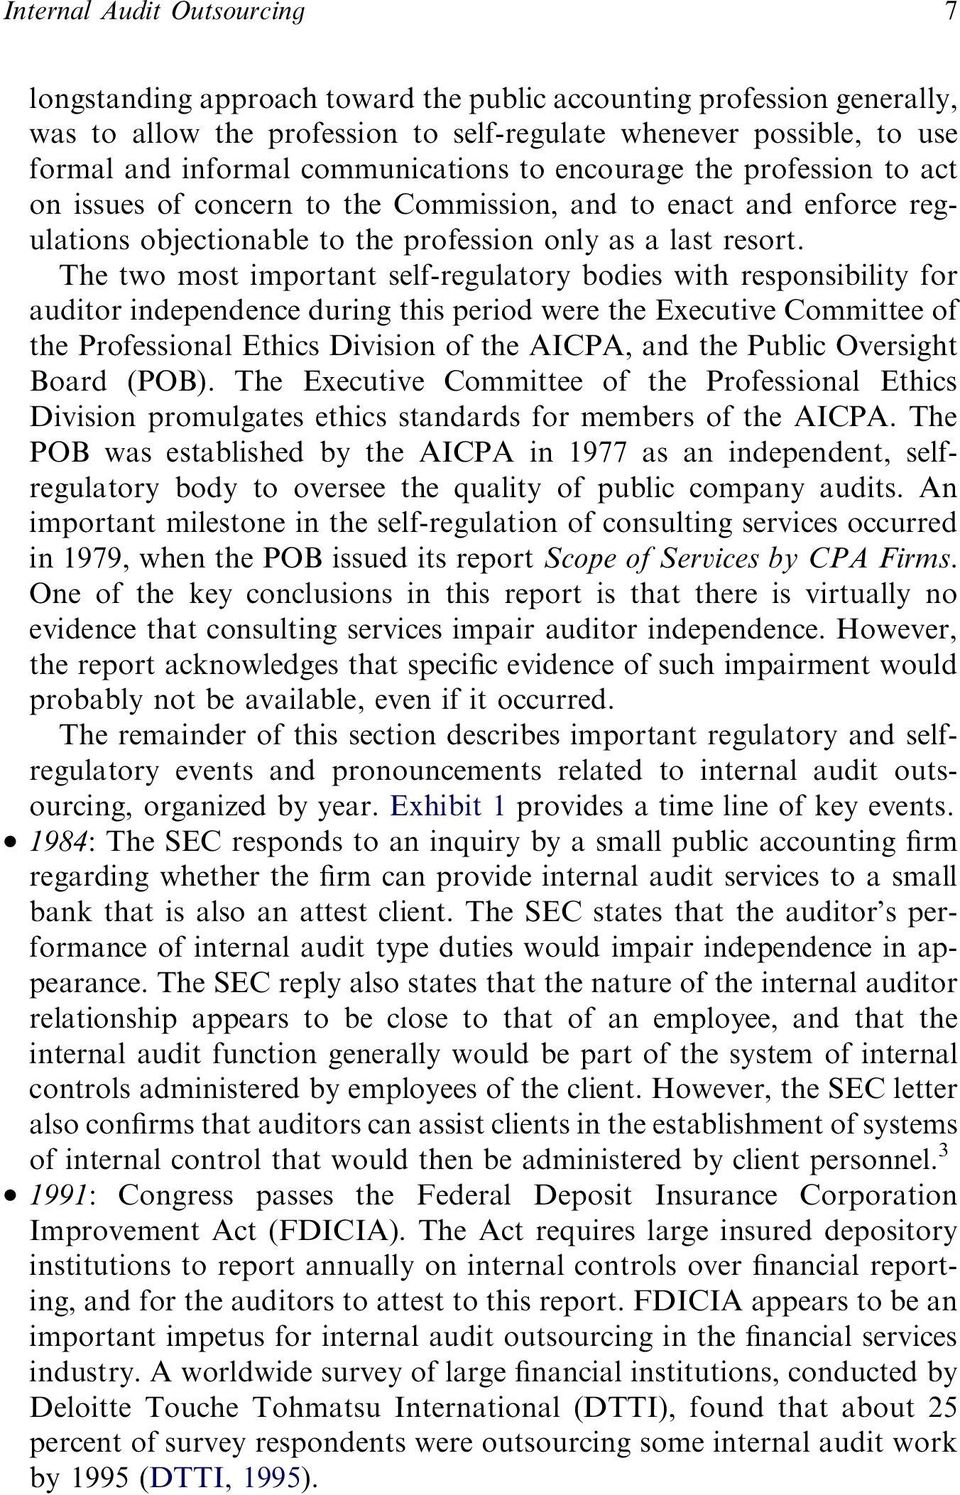 The two most important self-regulatory bodies with responsibility for auditor independence during this period were the Executive Committee of the Professional Ethics Division of the AICPA, and the